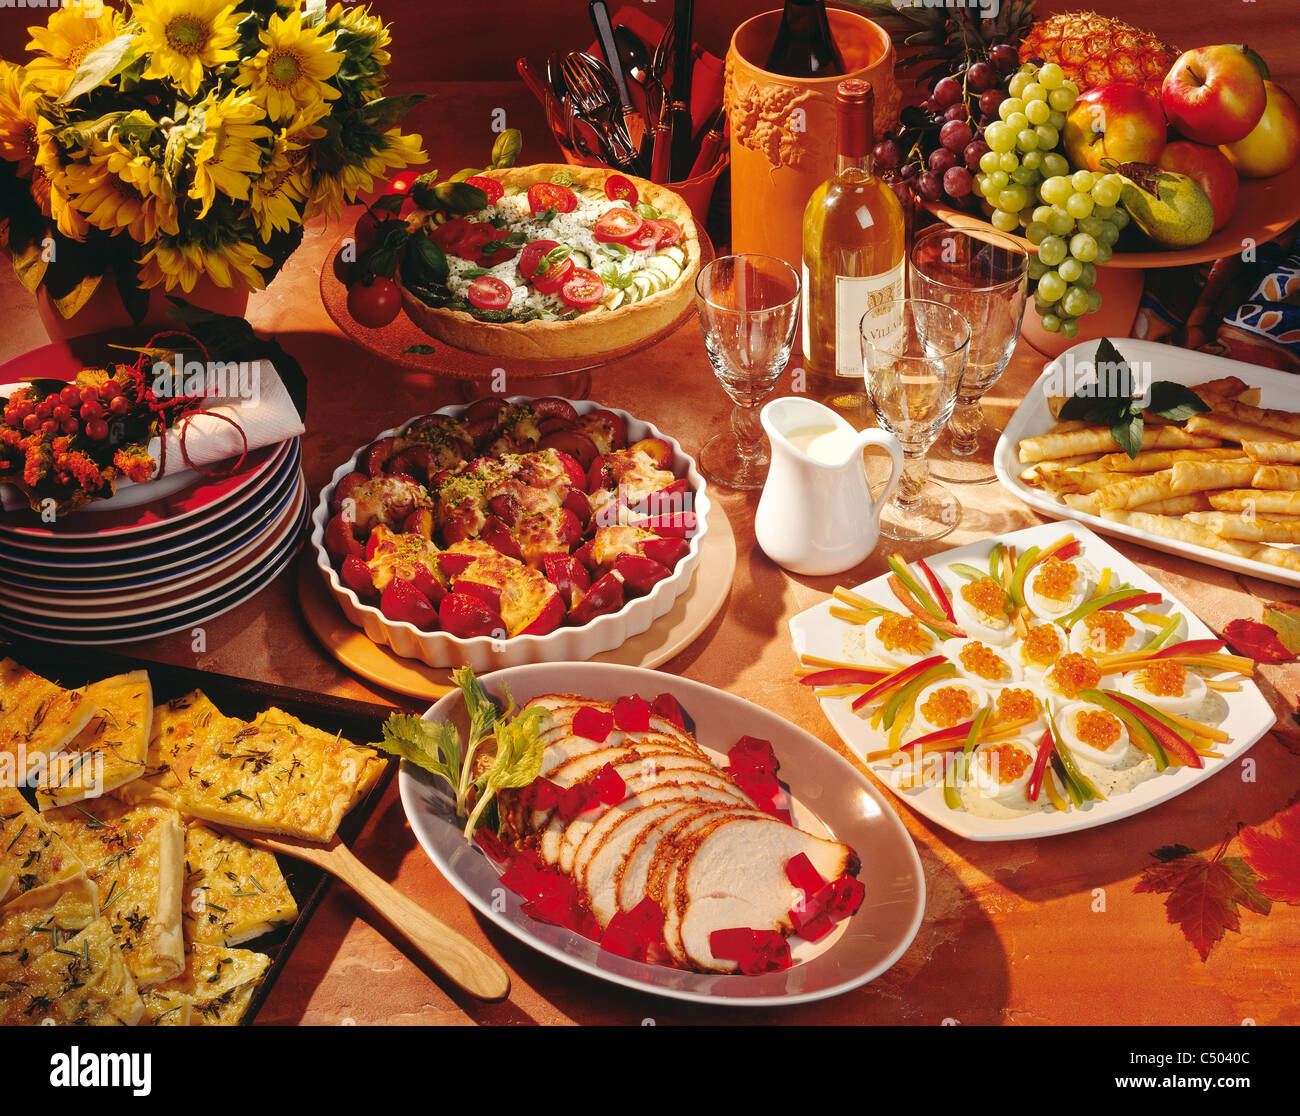 Tableau Autumn Brunch Stock Photo Alamy